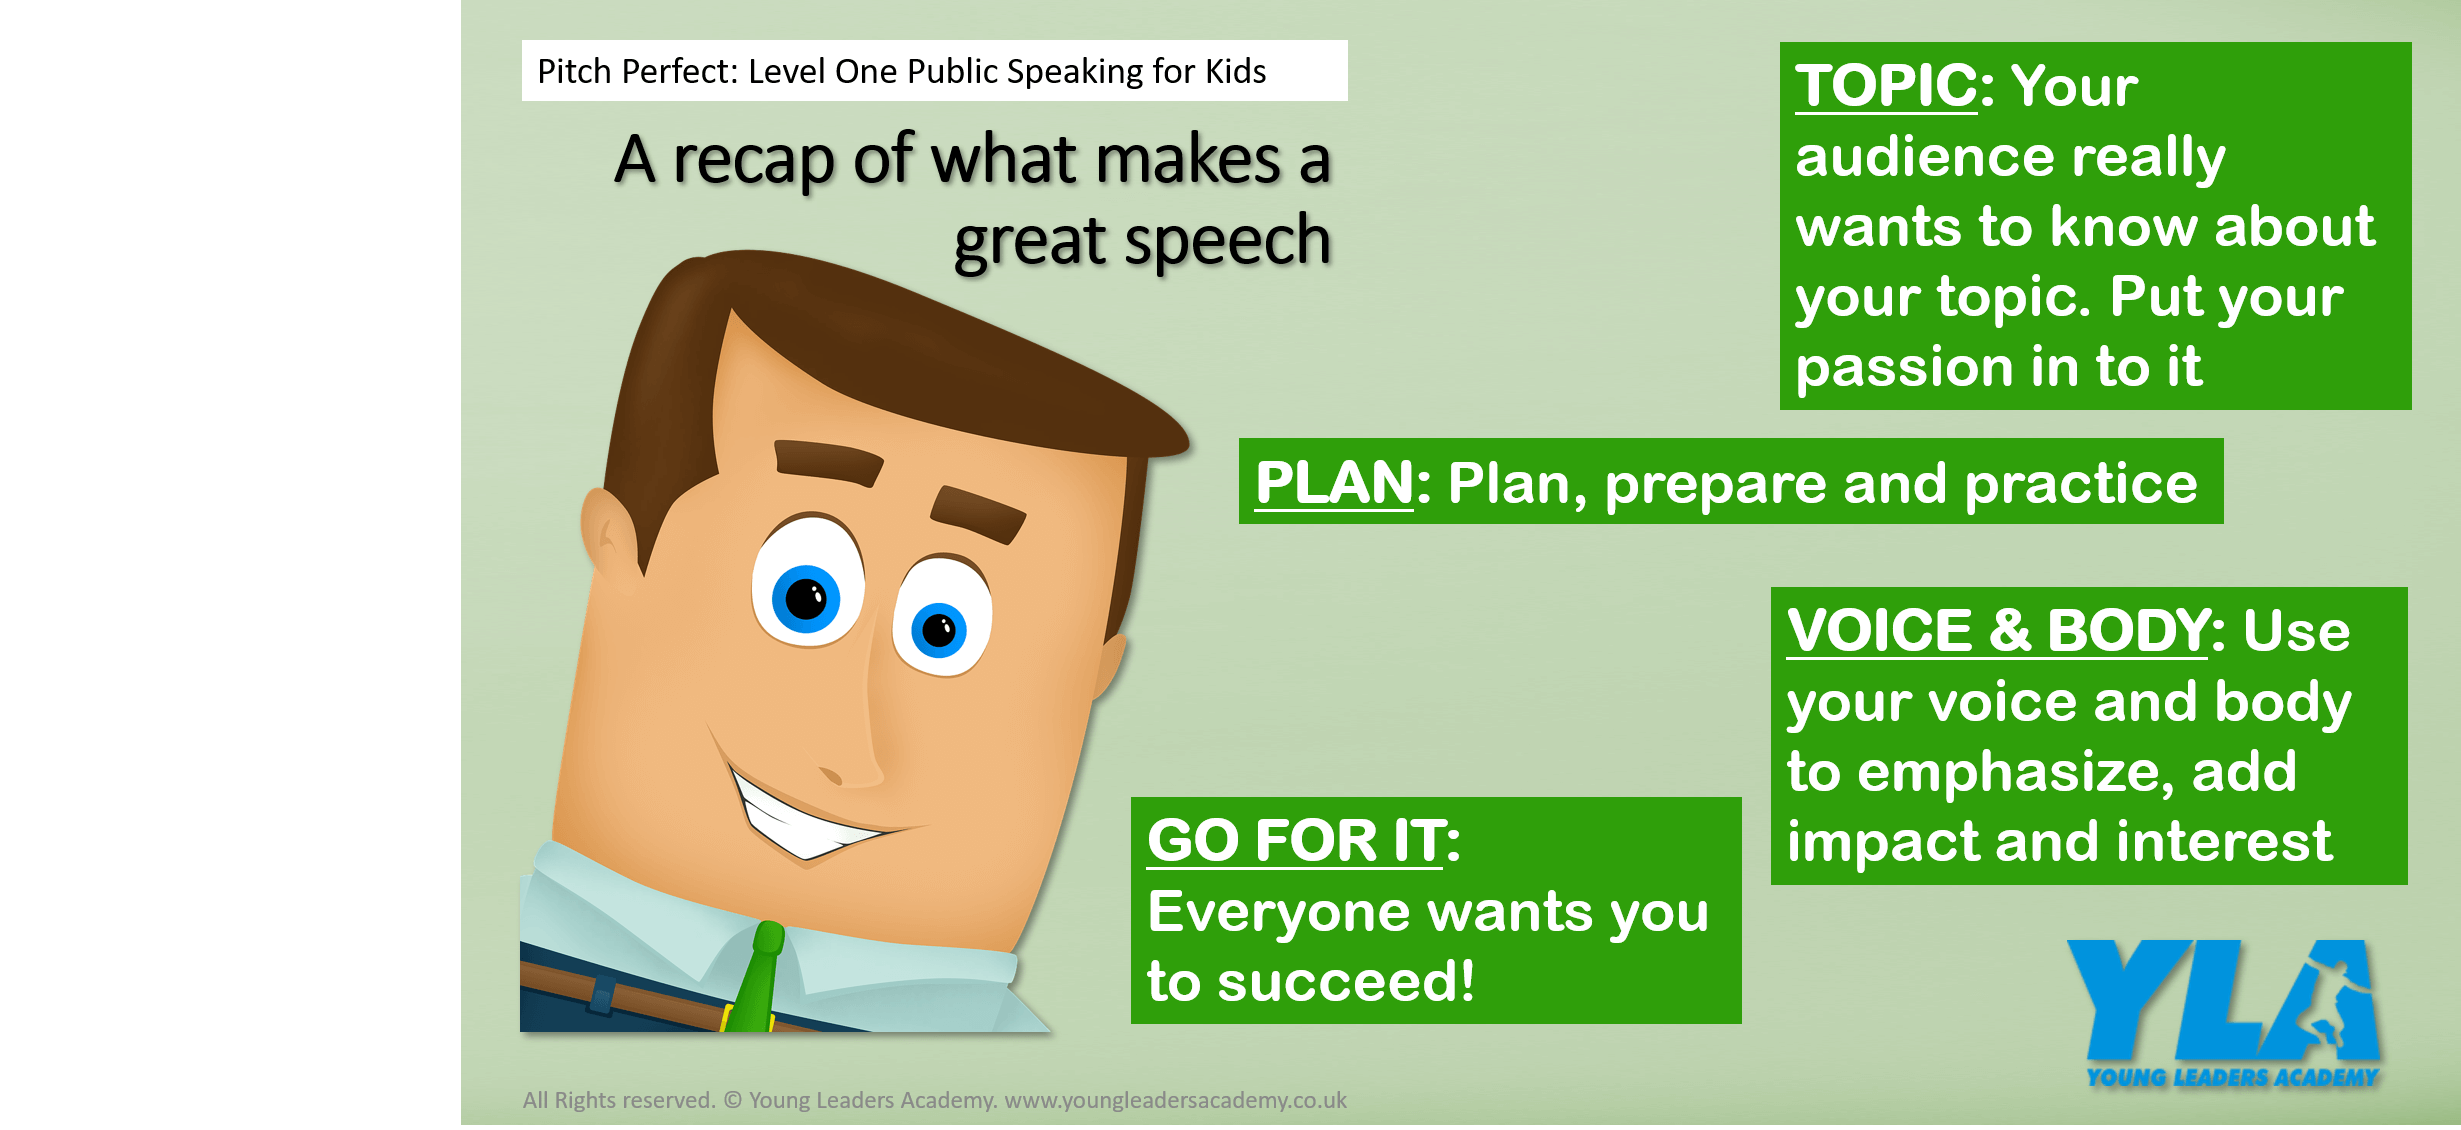 Example poster for public speaking course for kids